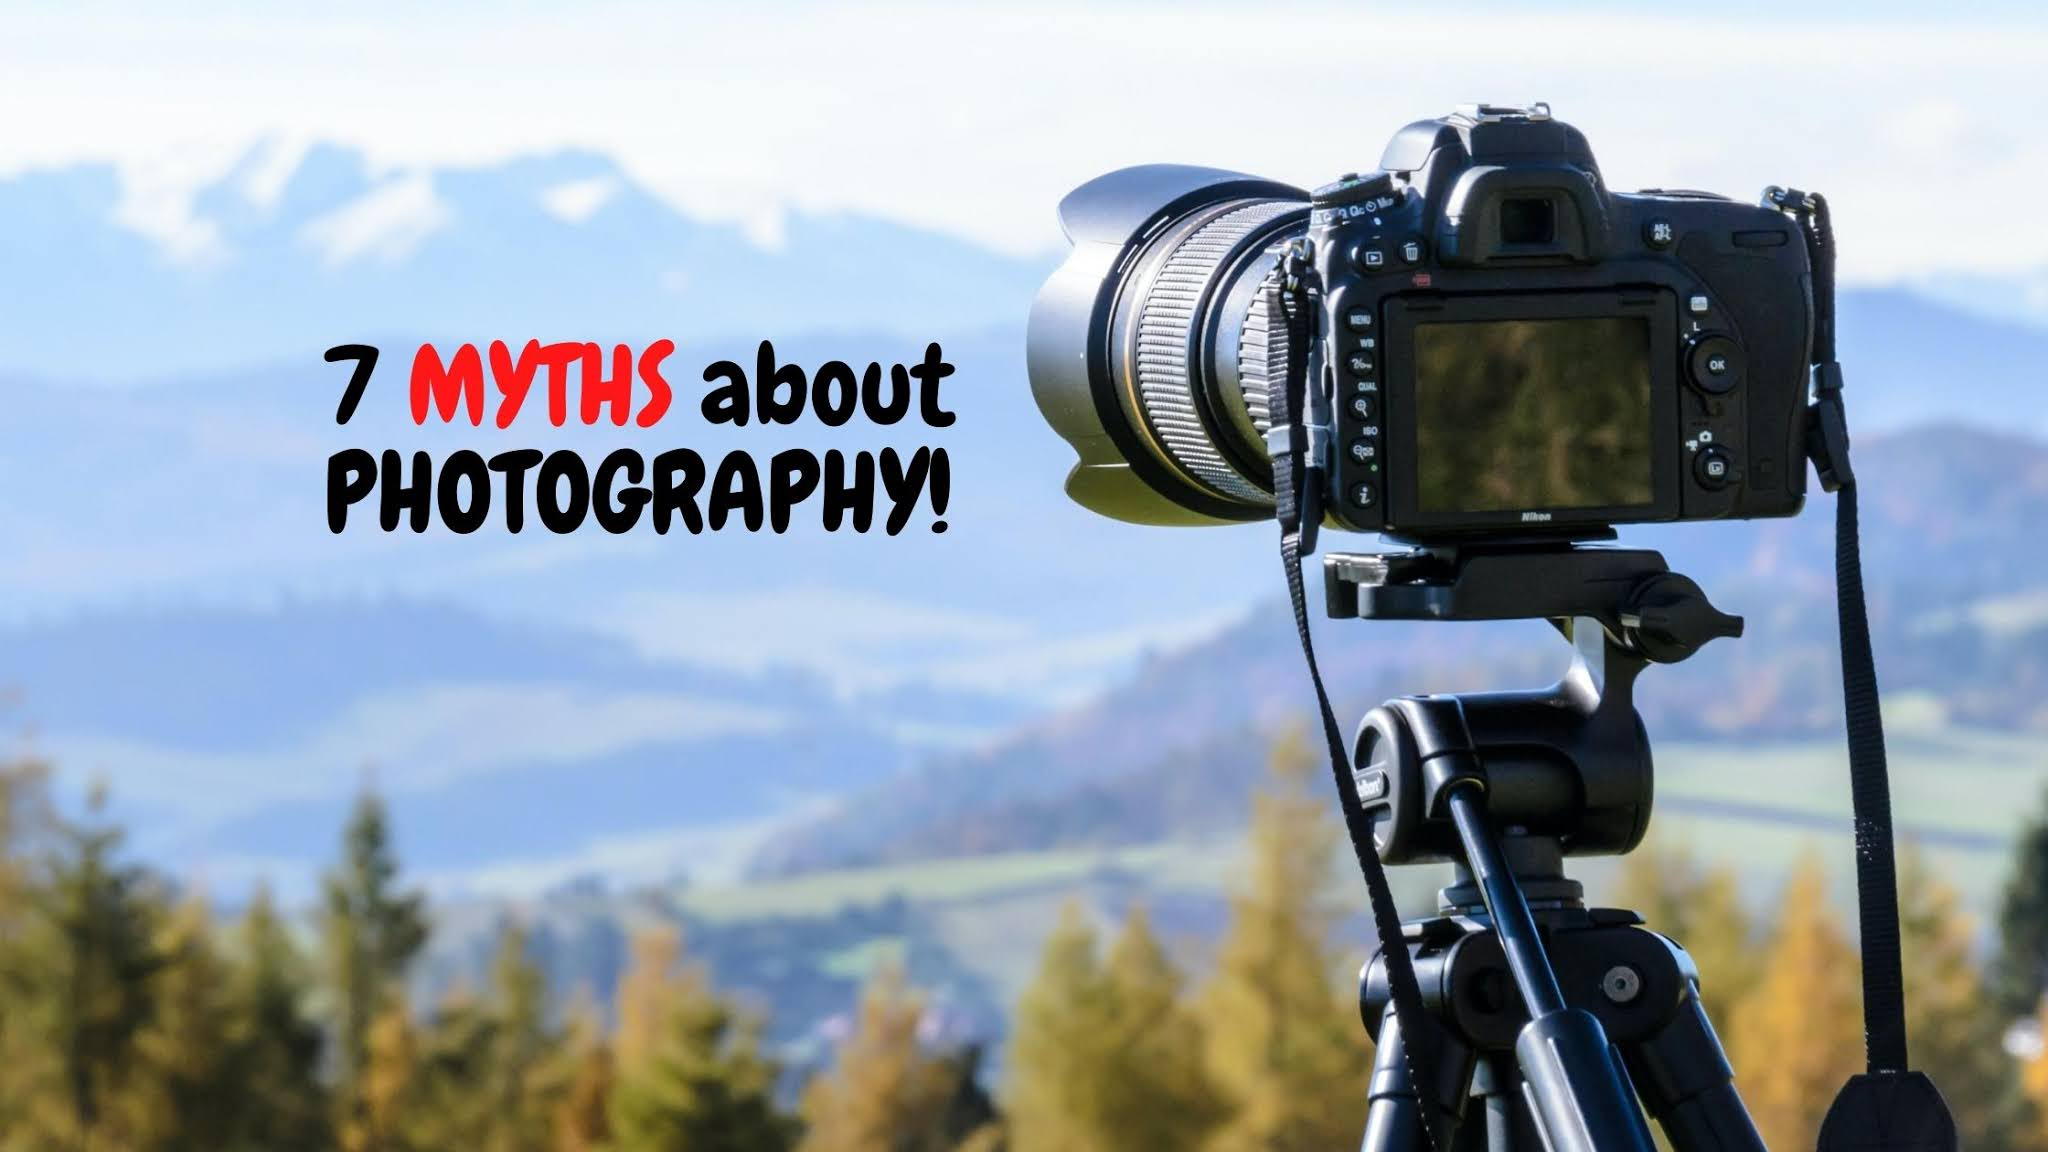 7 Myths about Photography